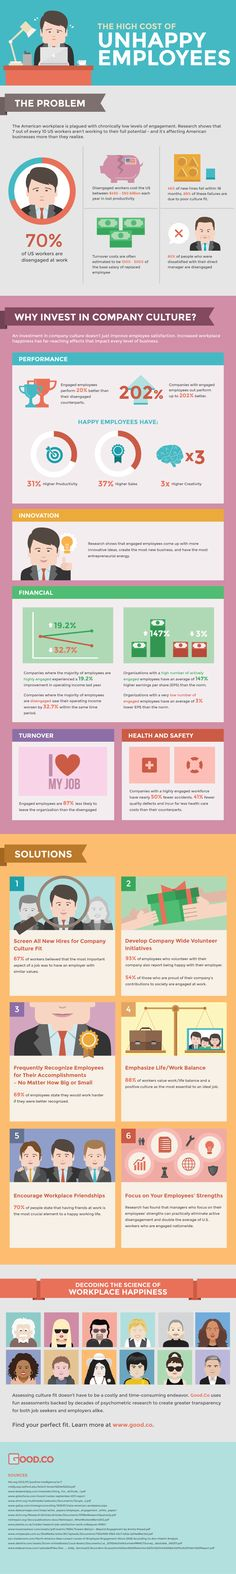 The High Cost of Unhappy Employees Infographic. Happy employees and company culture matter to the bottom line. It's really a no-brainer. Find stats to share with your execs and start a new dialogue. Business Management, Management Tips, Project Management, Resource Management, Happy Employees, Employee Recognition, Web Design, Leadership Quotes, Leadership Strengths